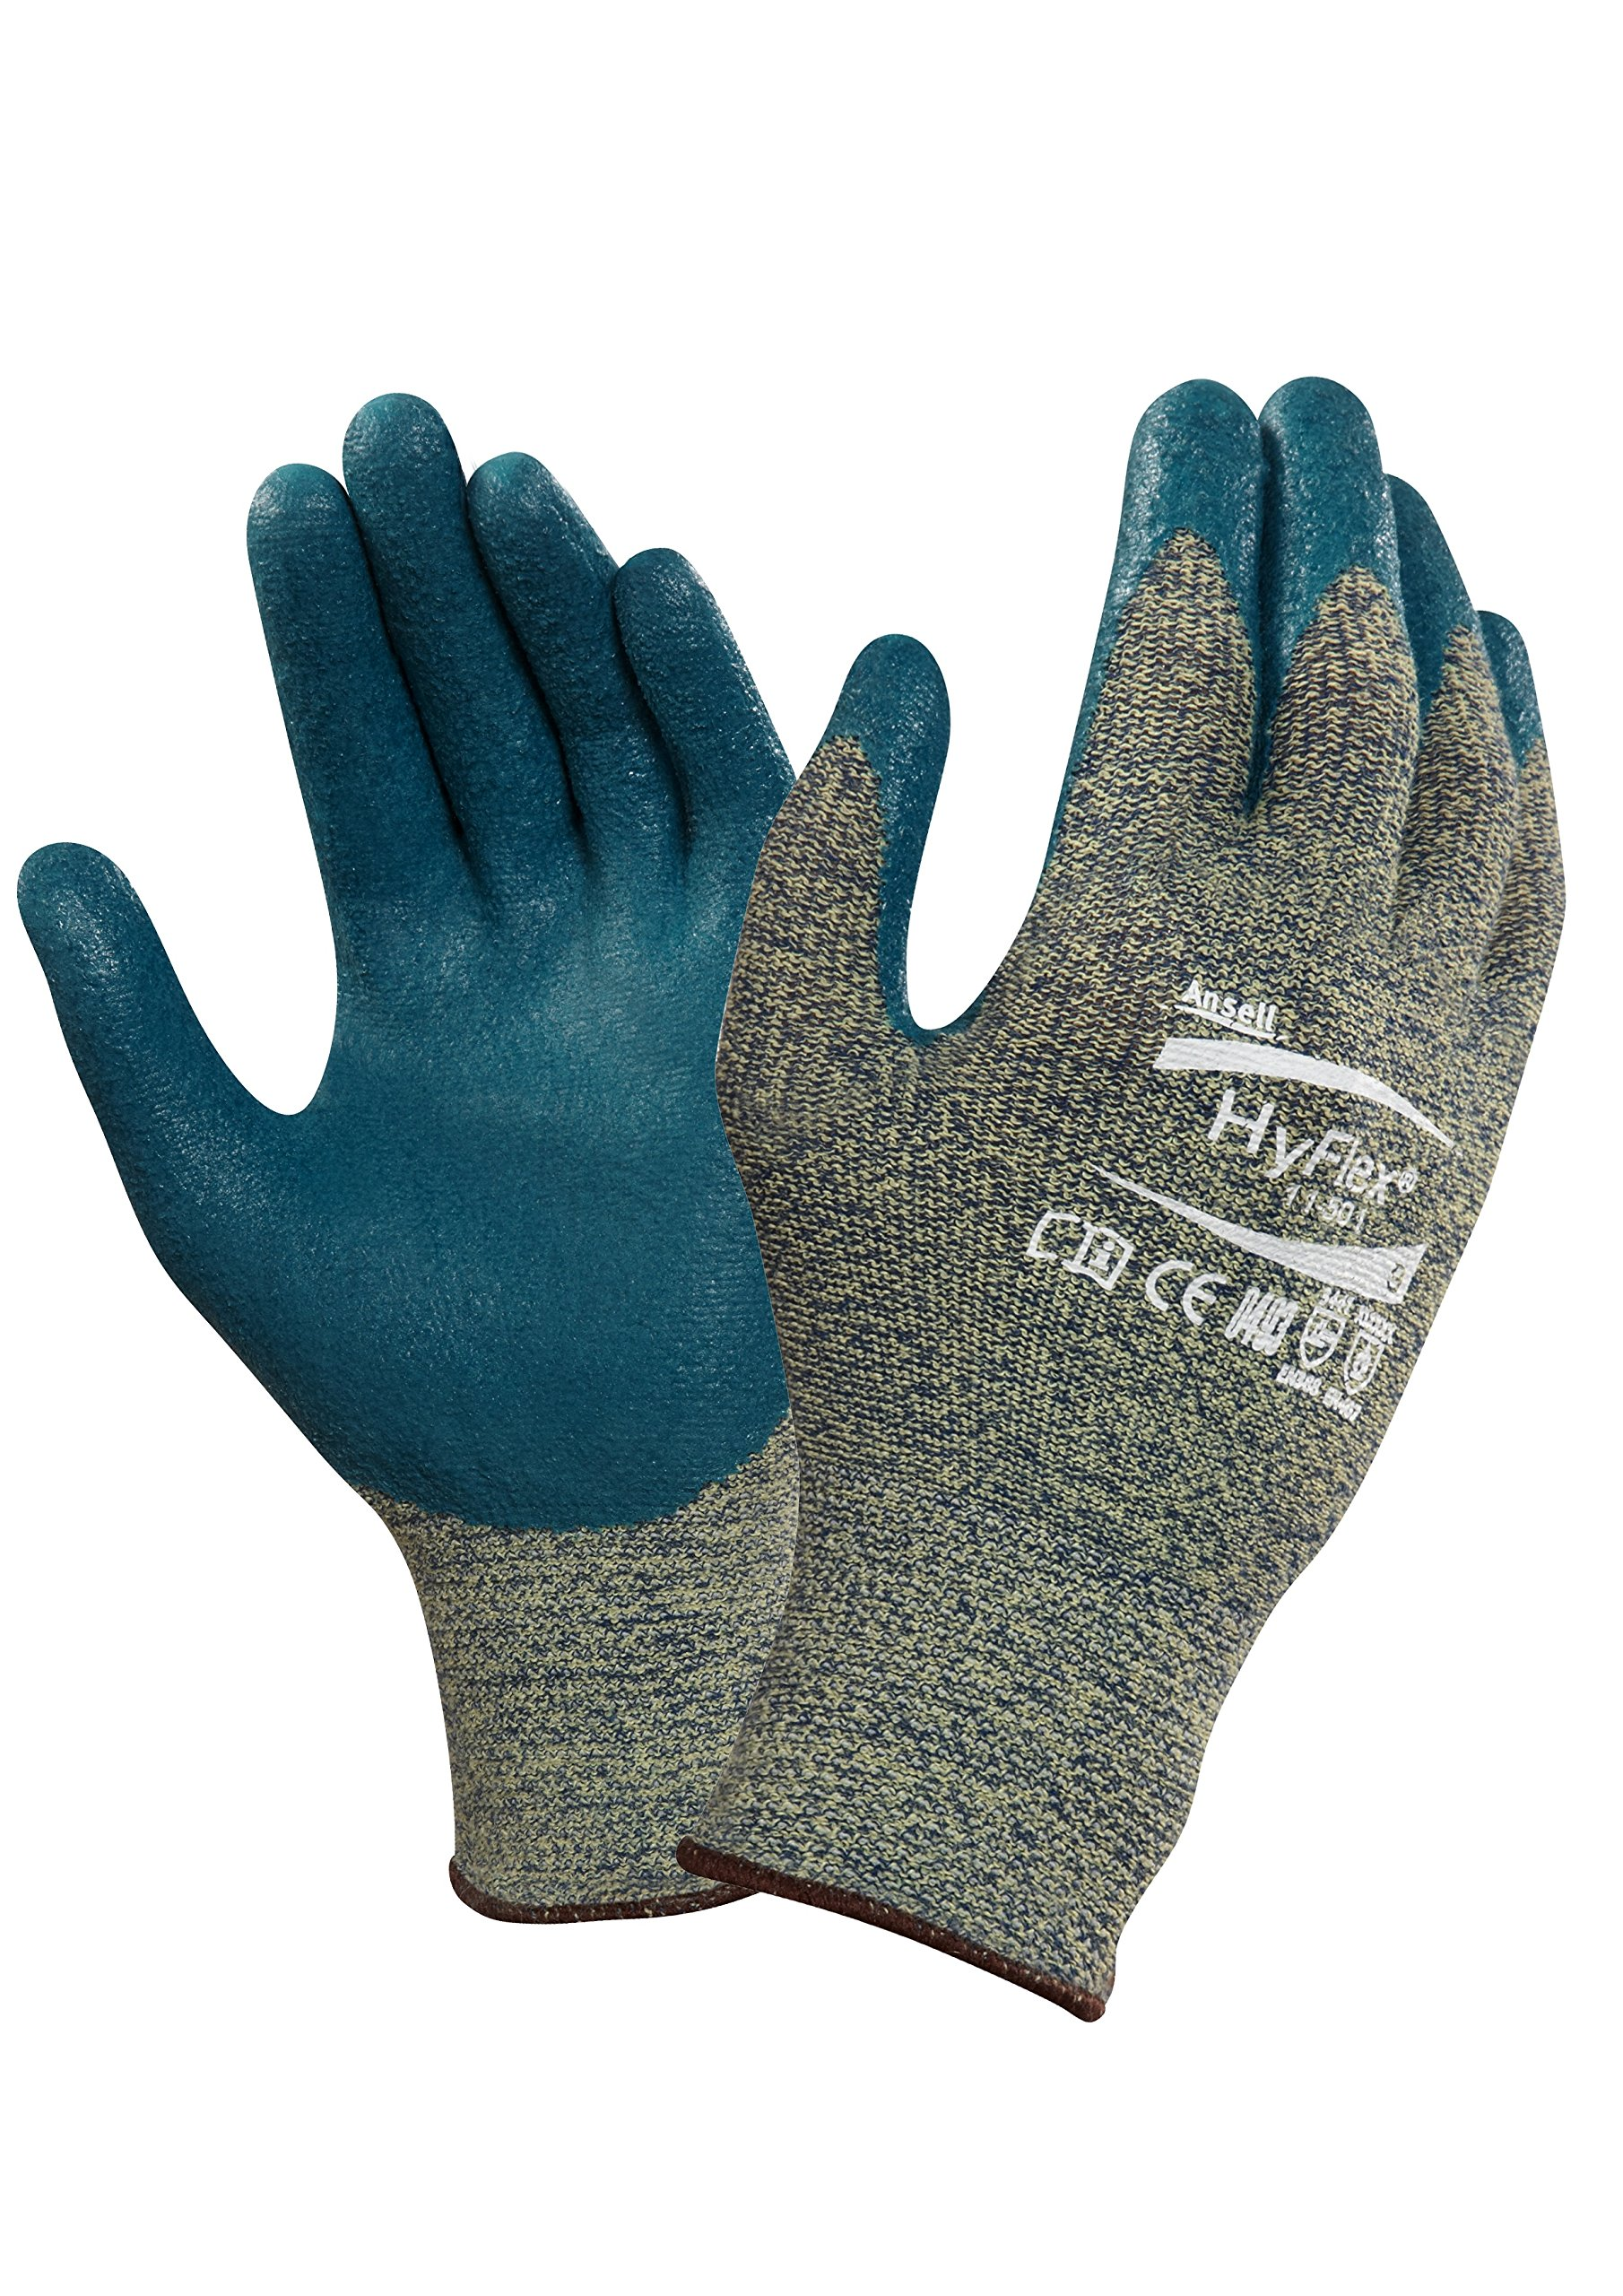 Ansell HyFlex 11-501 Kevlar Glove, Cut Resistant, Blue Foam Nitrile Coating, Knit Wrist Cuff, Small, Size 7 (Pack of 12)